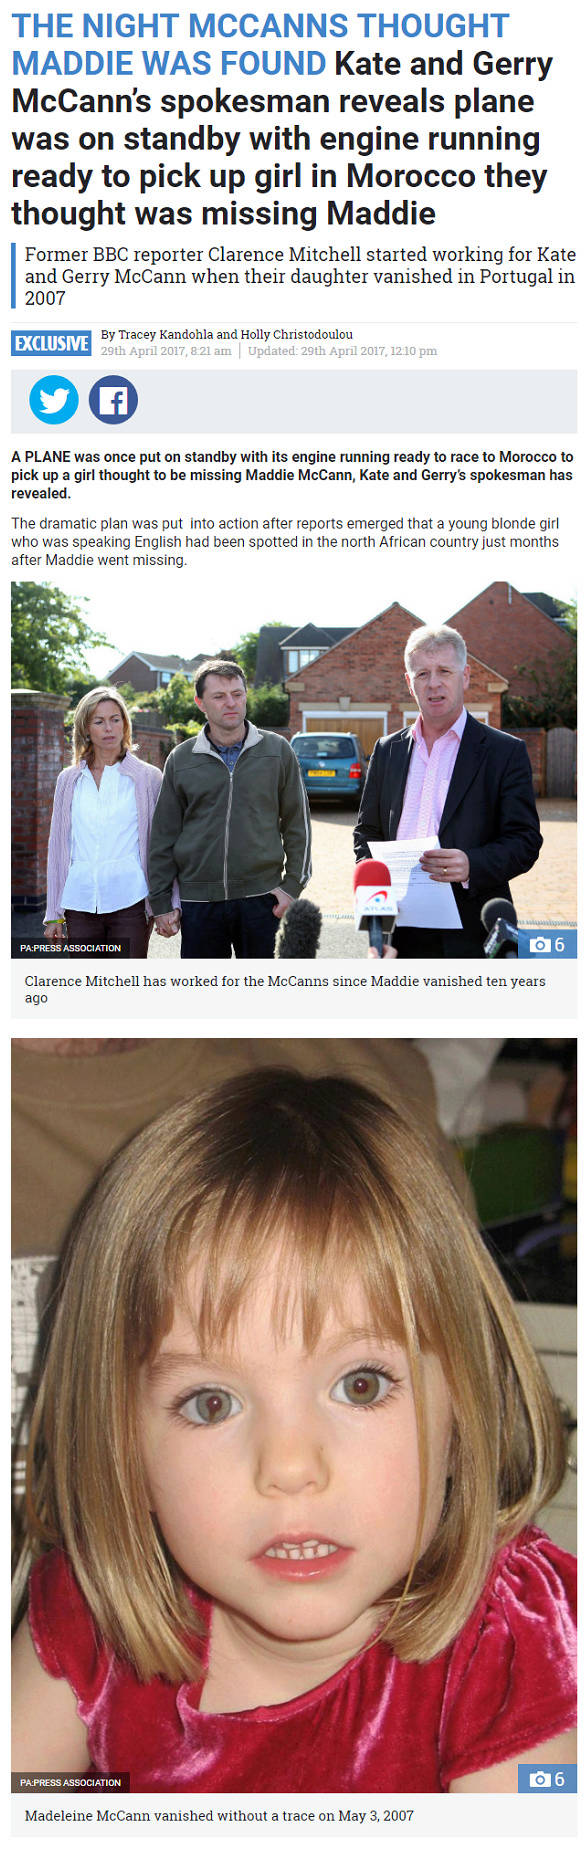 The Sun 29th April 2017 - The Night The McCanns Thought Maddie Was Found Part_110